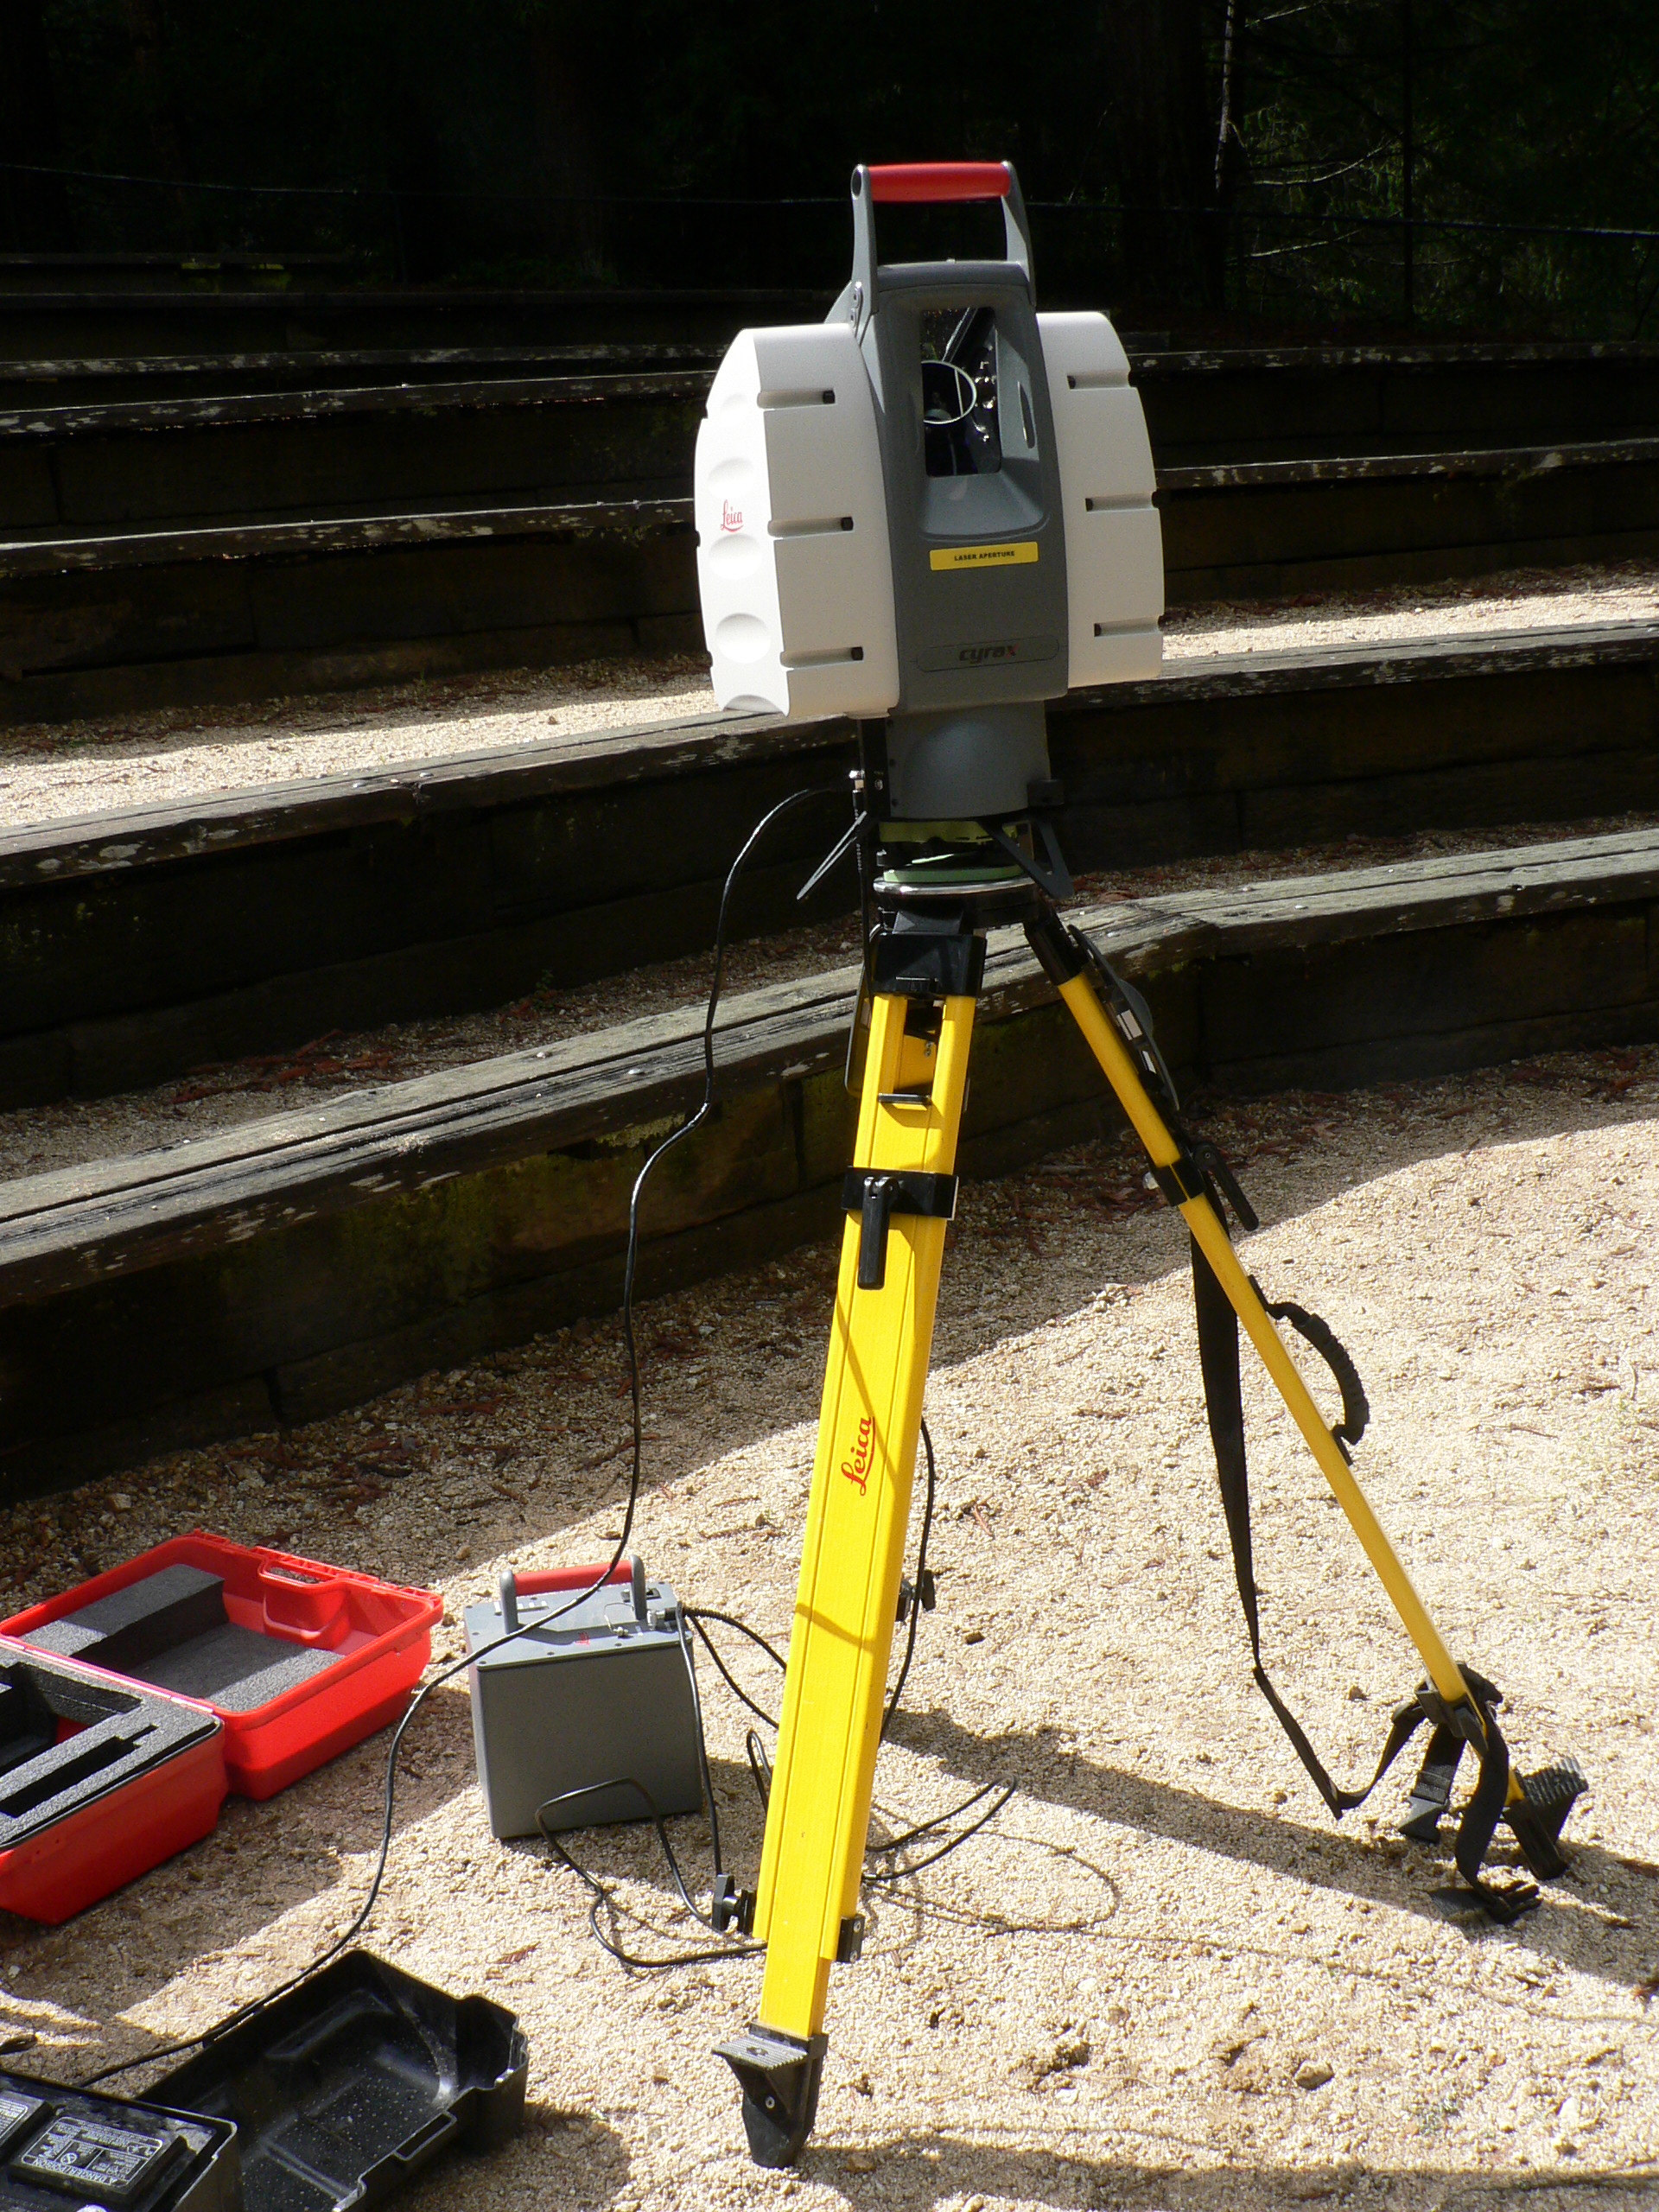 A conventional LiDAR used to scan buildings. Image via Wikimedia Commons